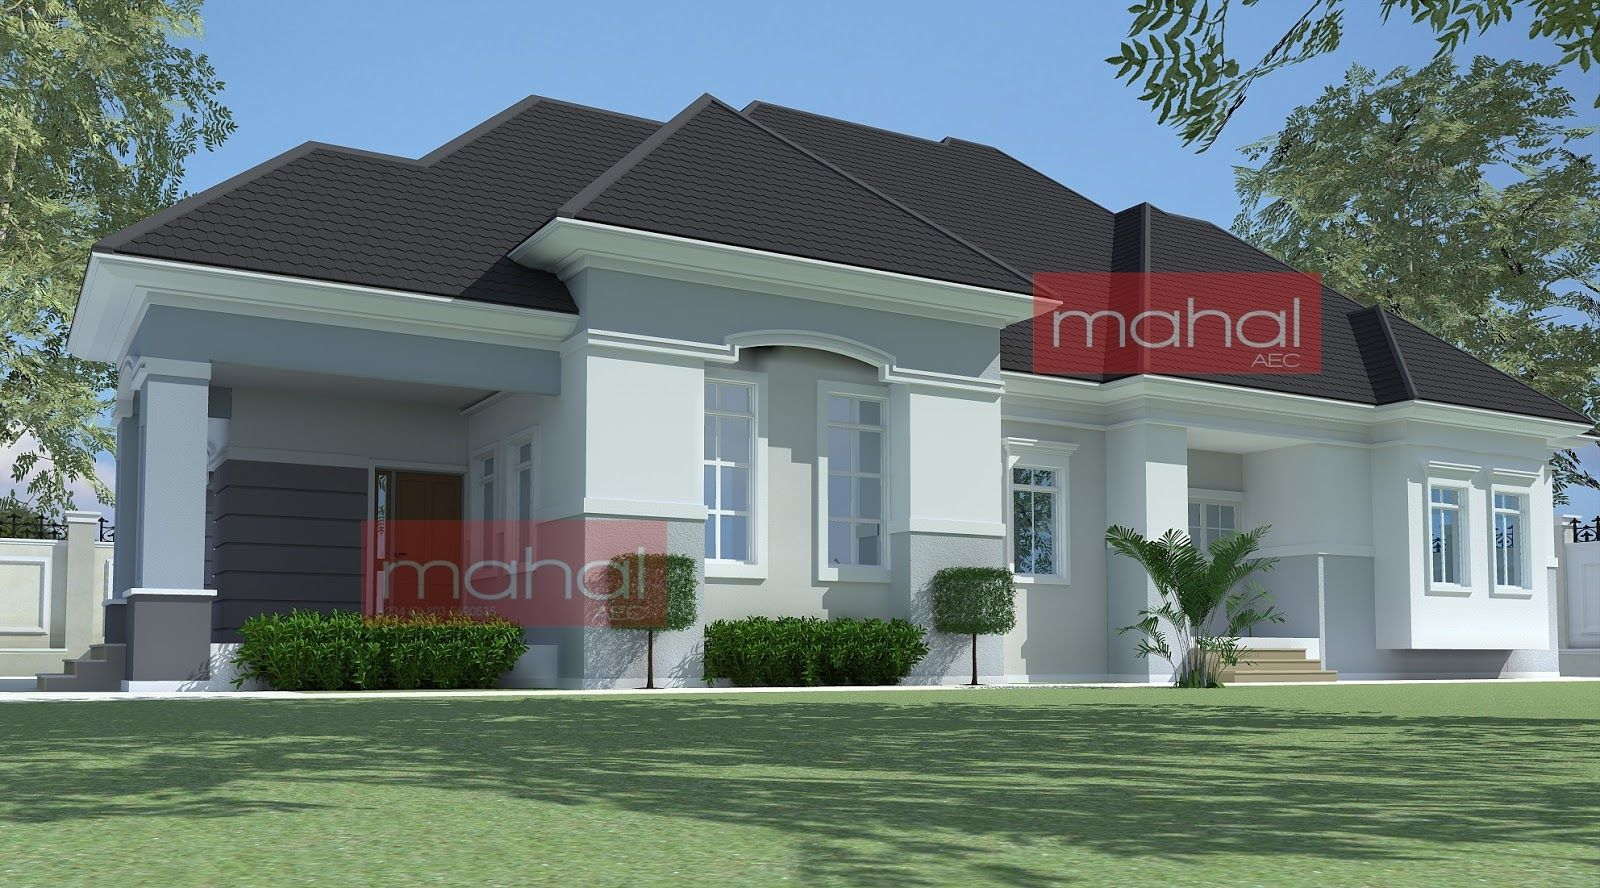 4 bedroom bungalow plan in nigeria 4 bedroom bungalow for Home exterior and interior designs